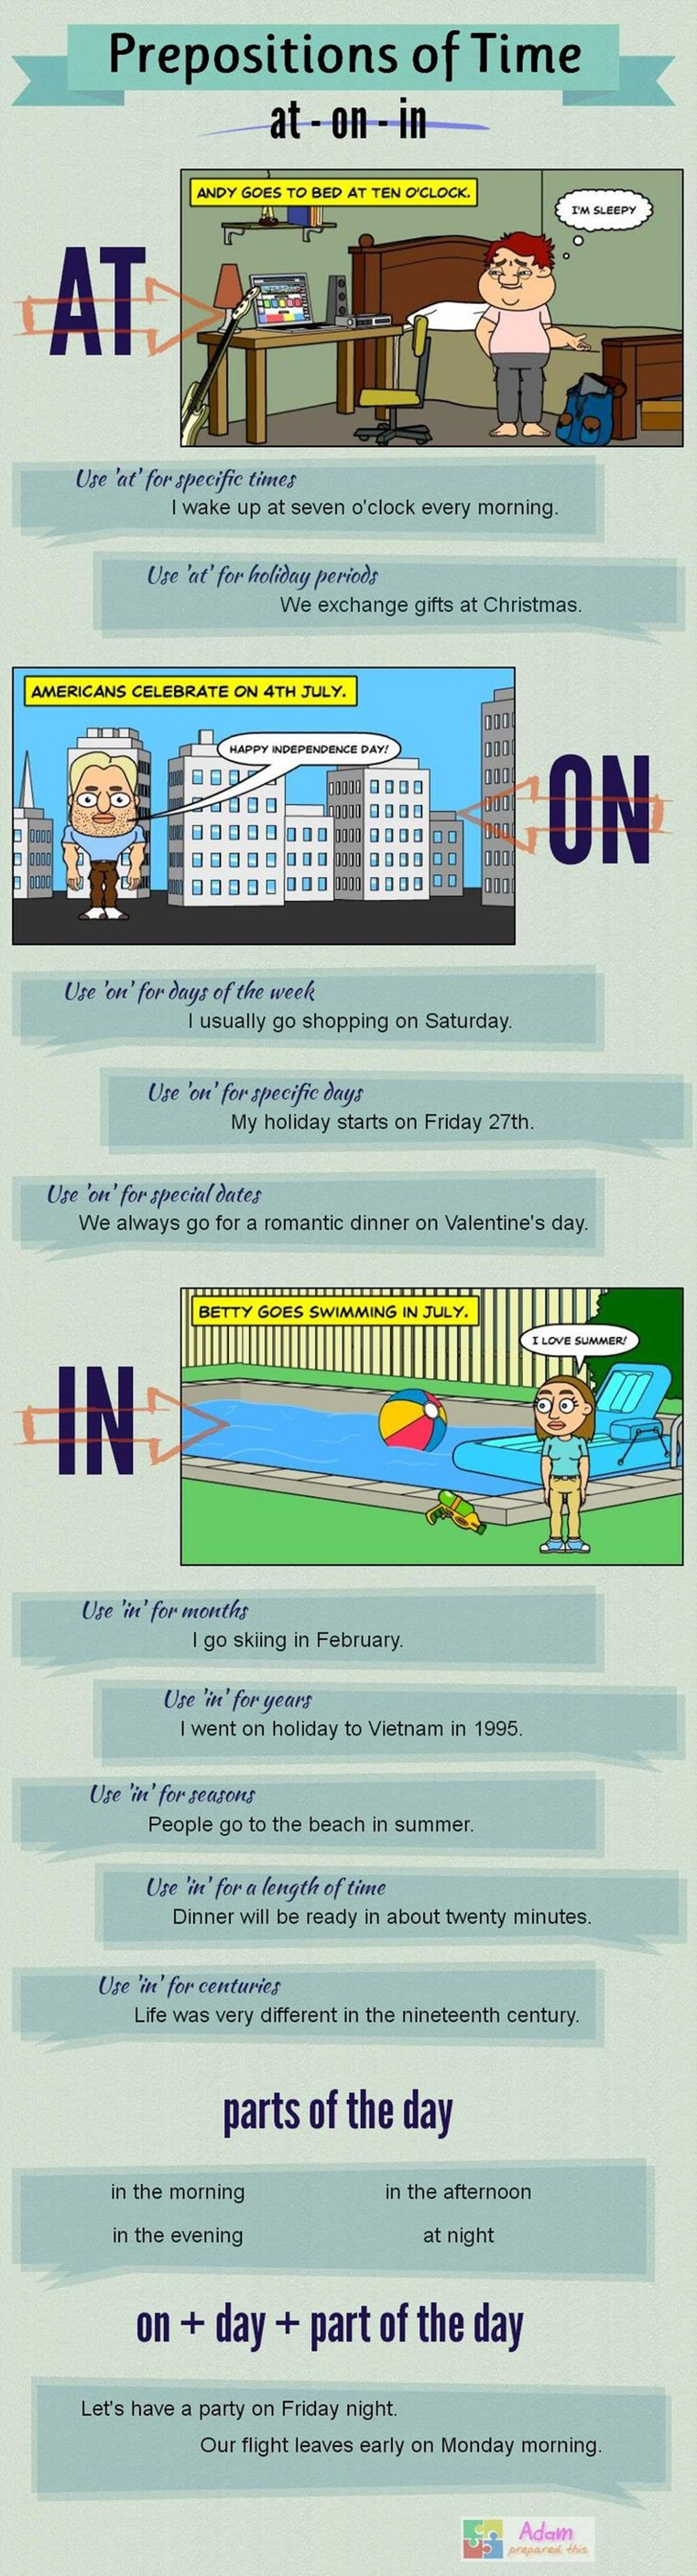 Prepositions of Time – AT, IN, ON (With Examples) 3